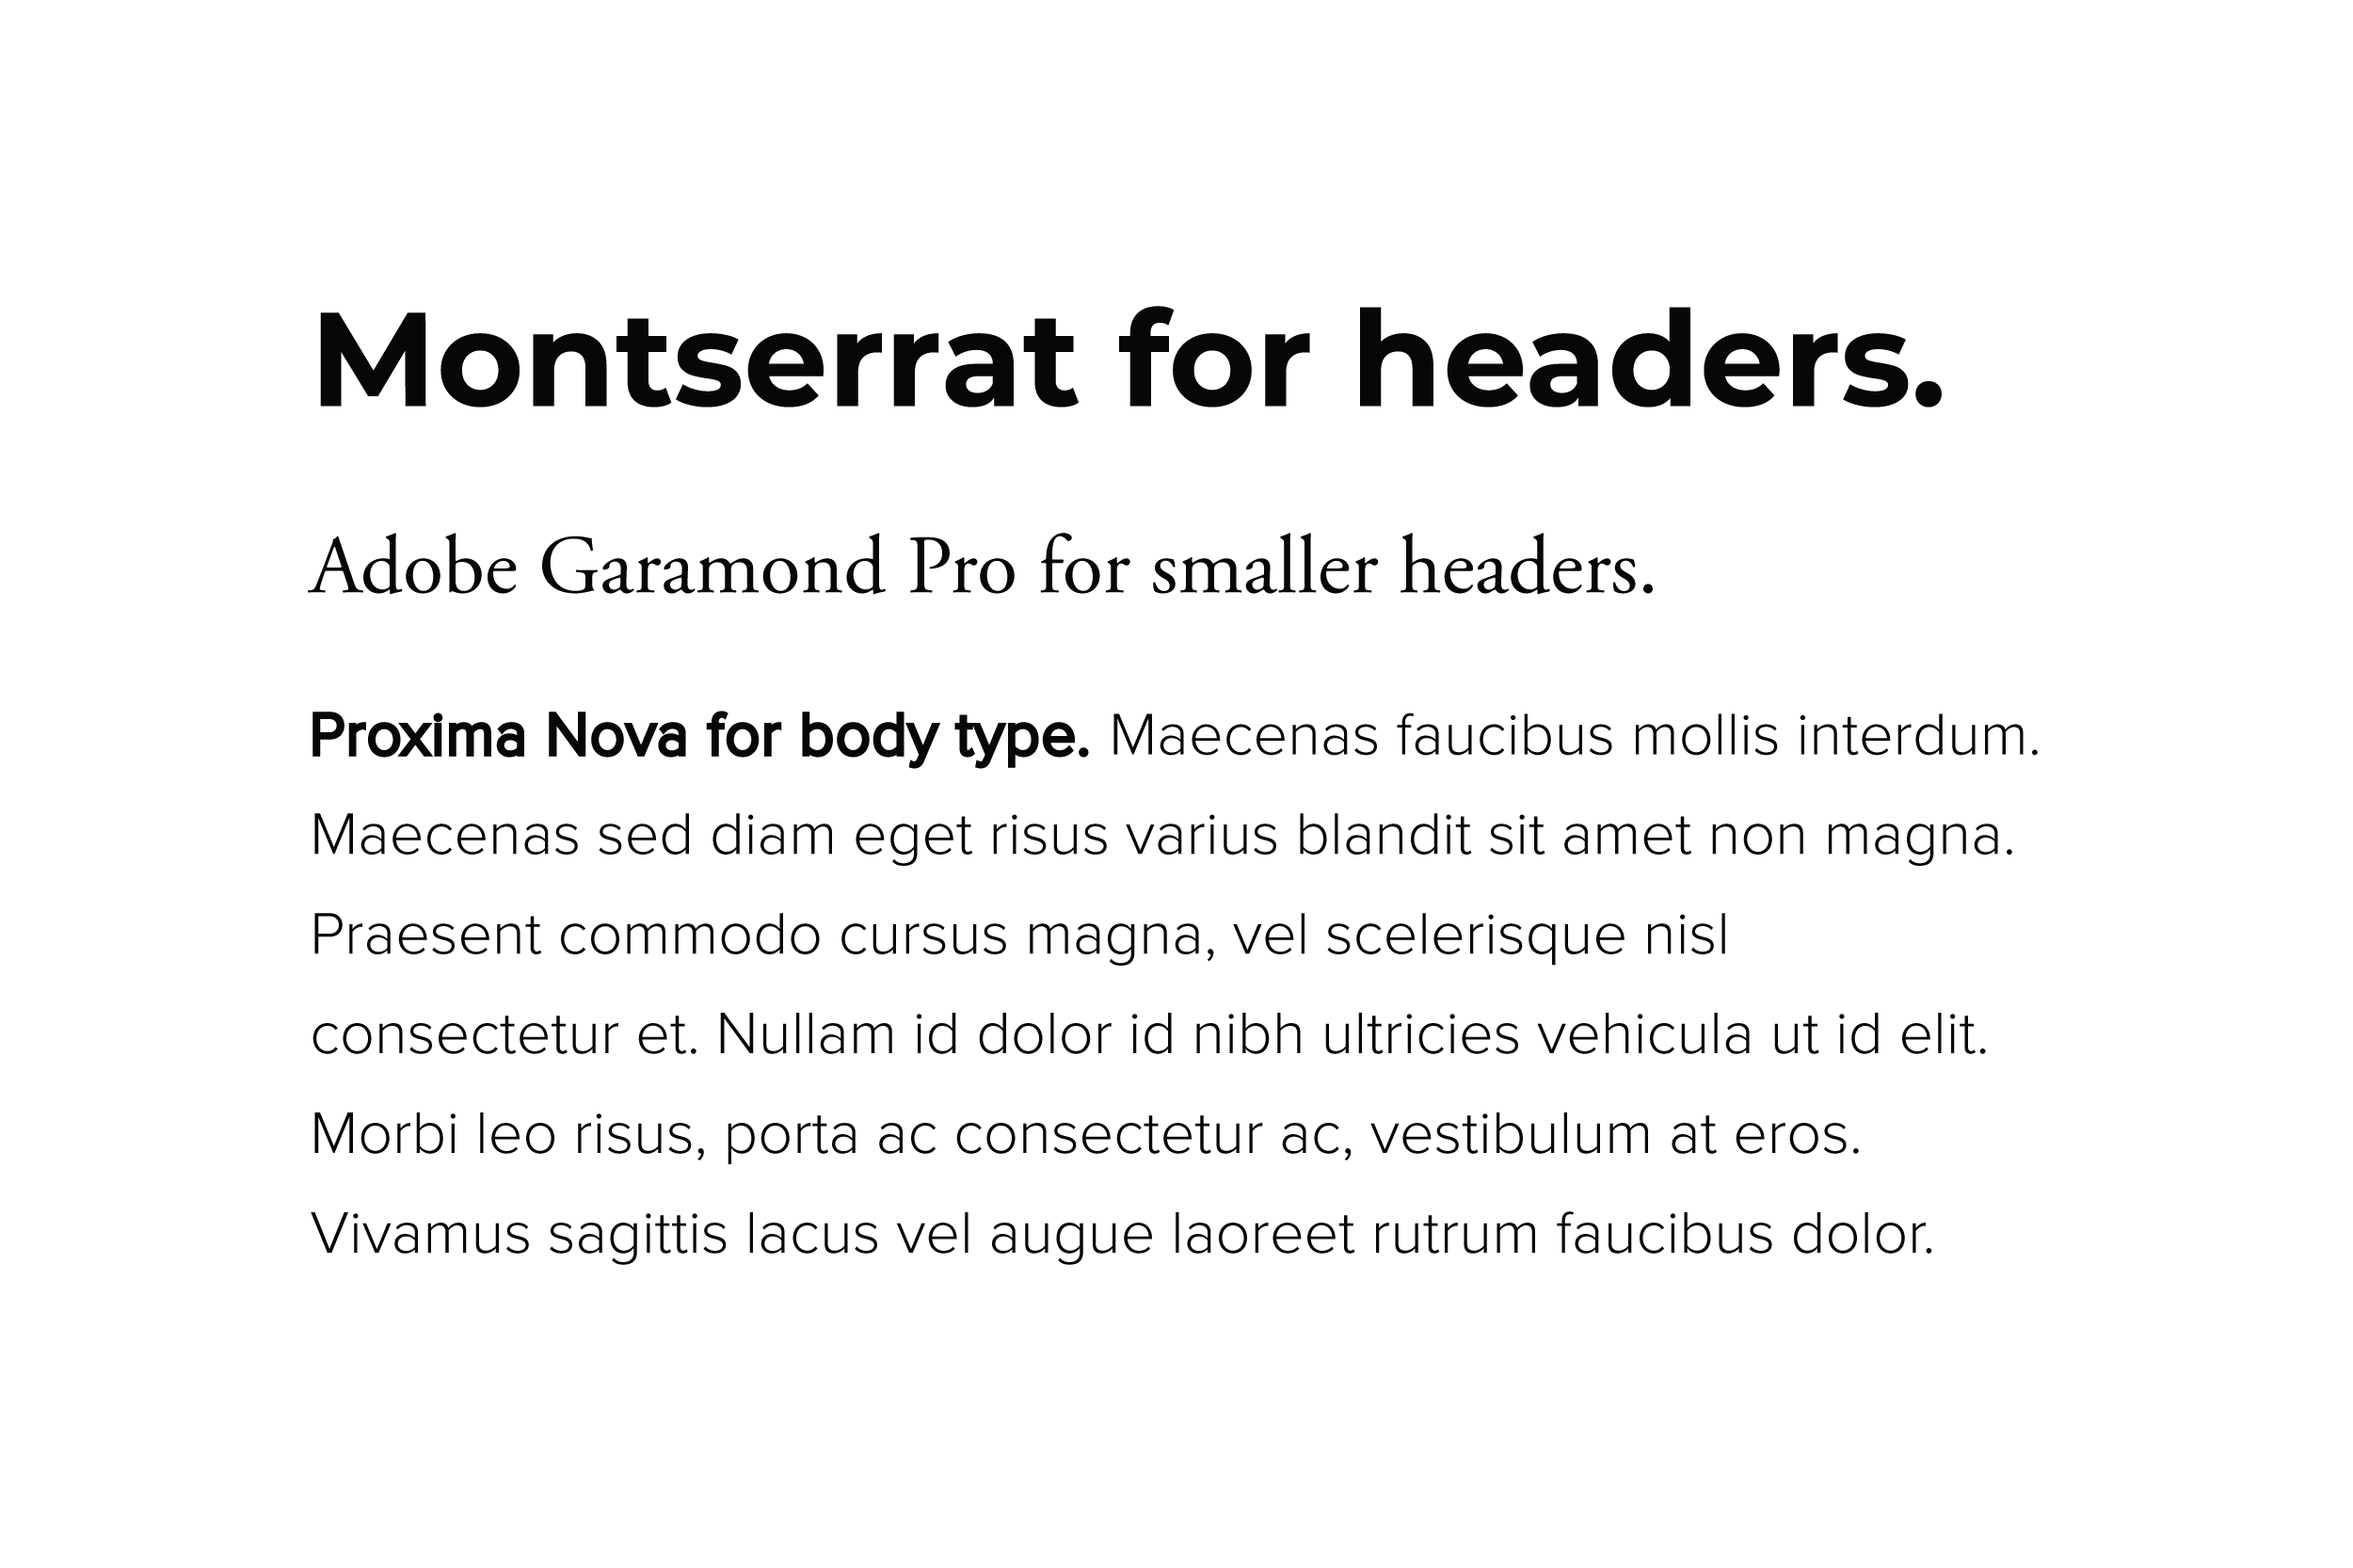 A sans-serif & serif combination was used to create a mood of professionalism.